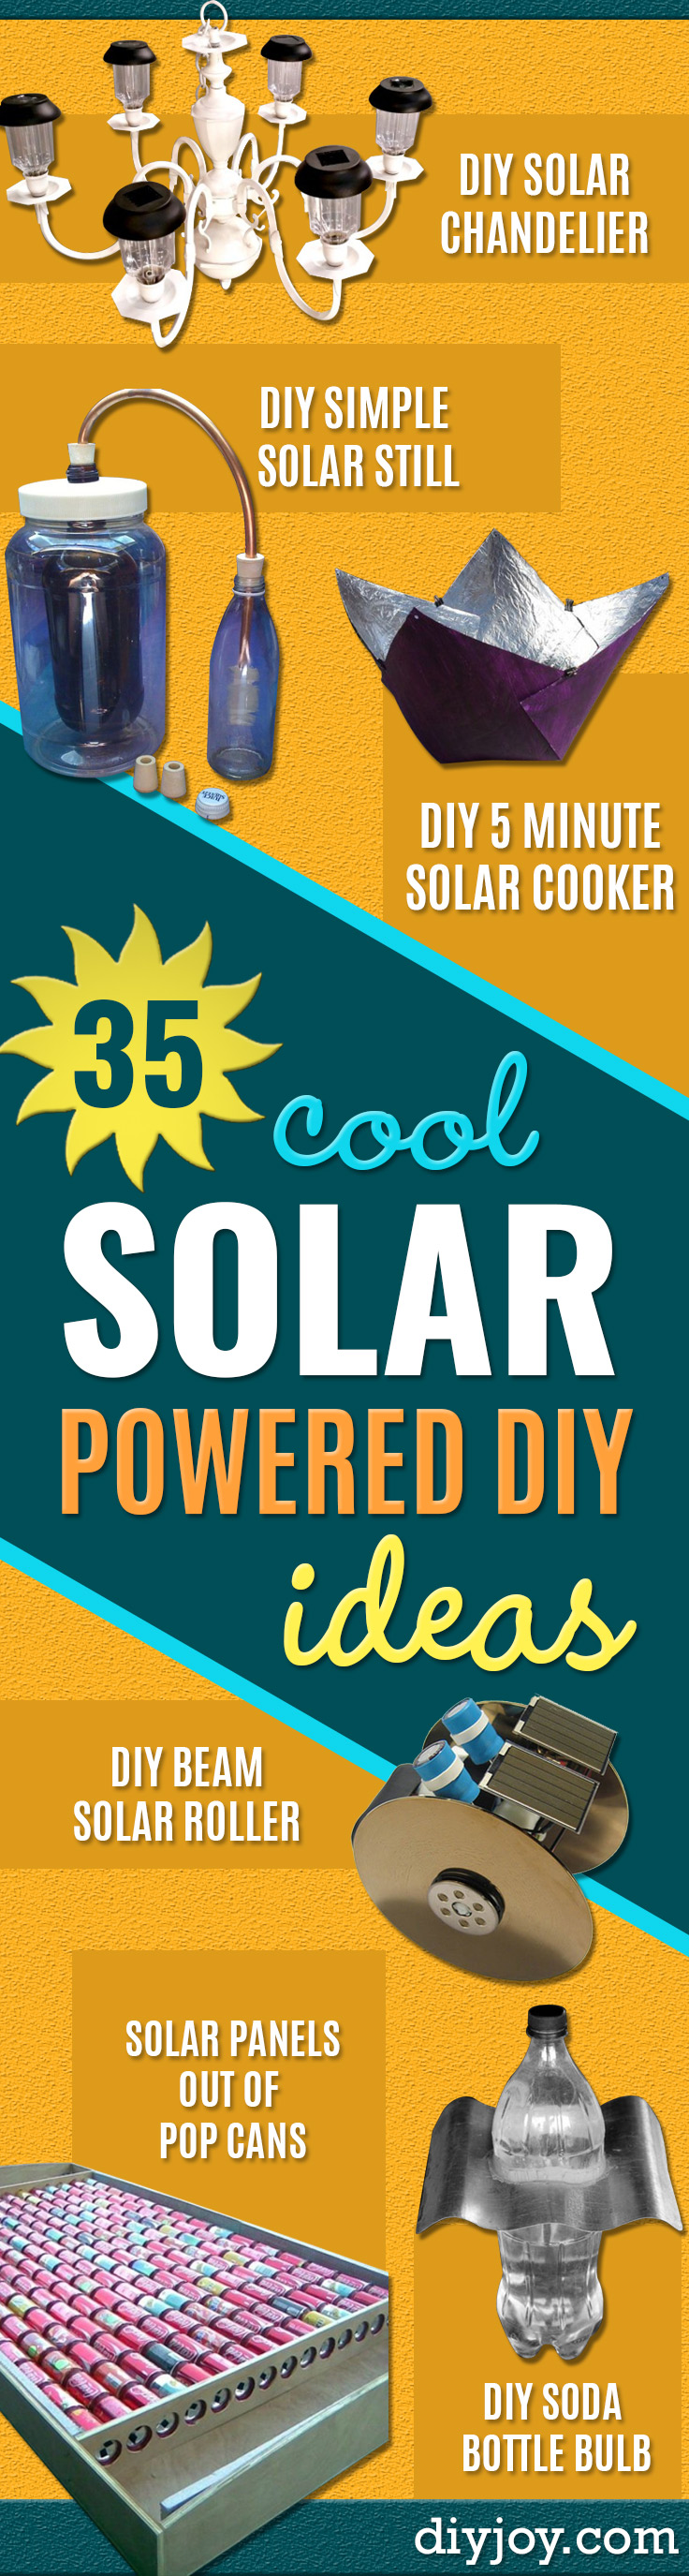 DIY Solar Powered Projects - Easy Solar Crafts and DYI Ideas for Making Solar Power Things You Can Use To Save Energy - Step by Step Tutorials for Making Things Without Batteries - DIY Projects and Crafts for Men and Women http://diyjoy.com/diy-solar-power-projects